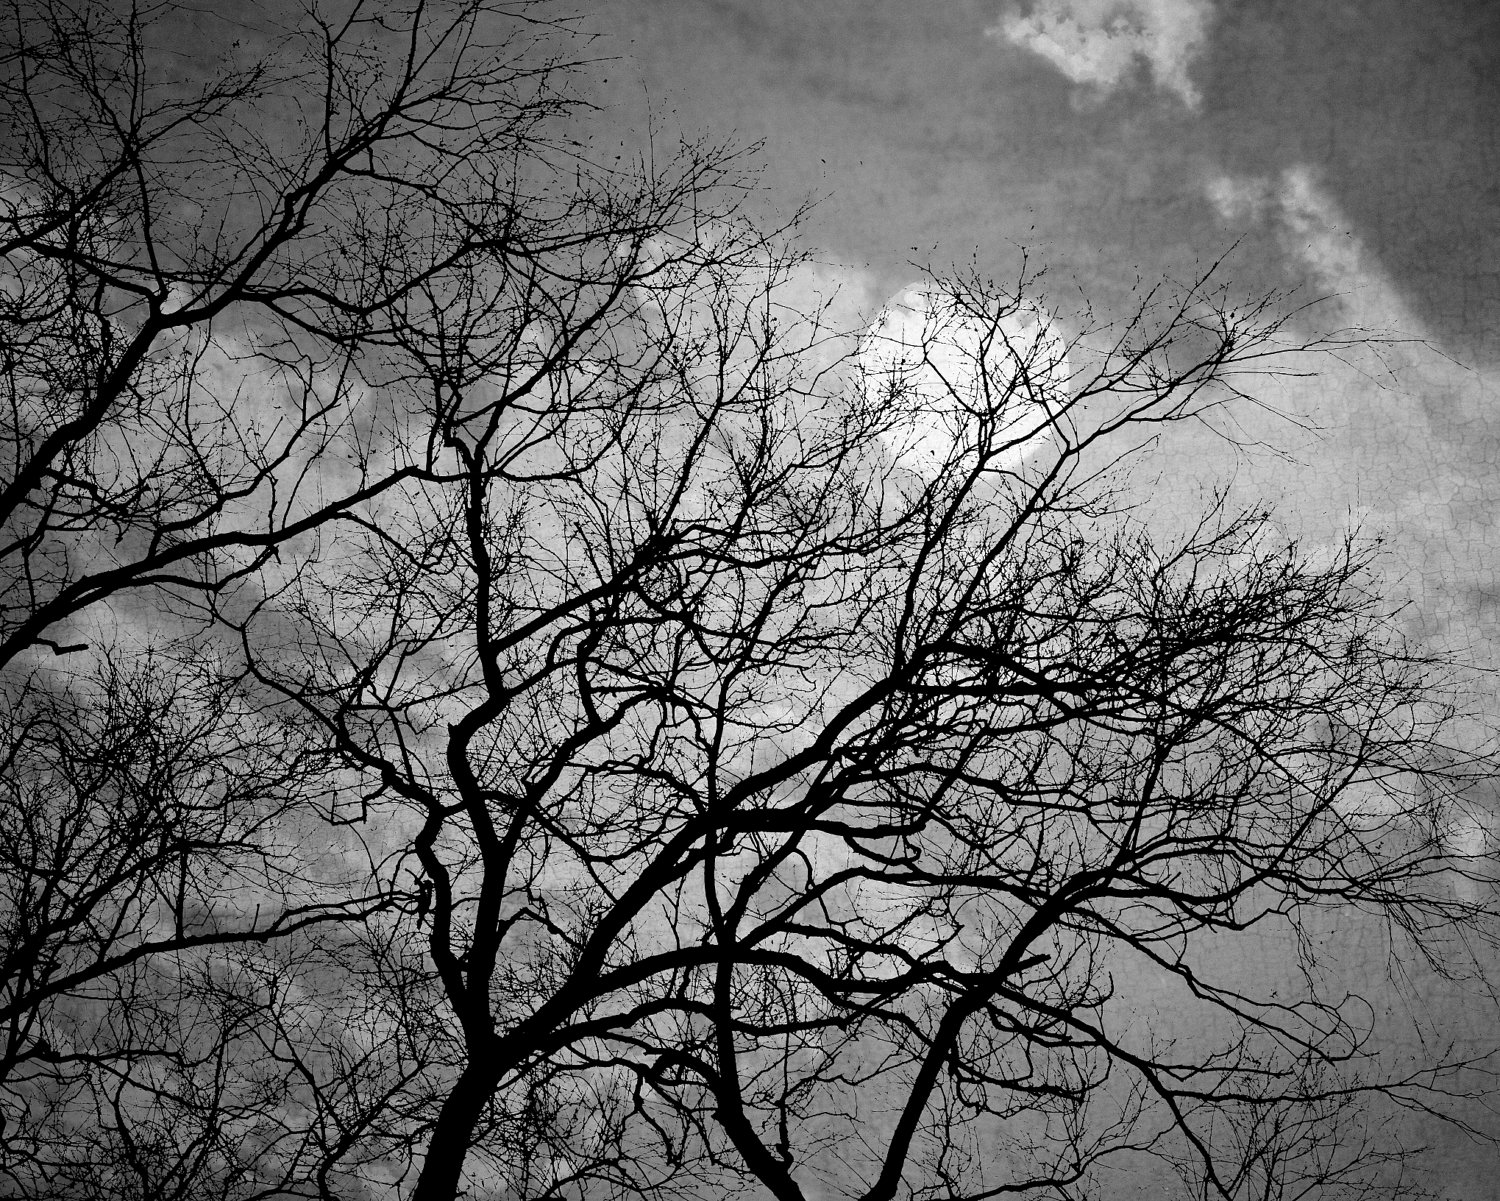 """You can purchase fabulous photographs like these from artists/photographers at places like Etsy. Take this """"Halloween Moon Photography 8x10, Black and White Night Sky Print, Surreal Tree Photo, Spooky Wall Art, Titanium Gray Decor"""". Photographers like  Elizabeth Urquhart  will offer any print in a variety of sizes, including 20x30."""